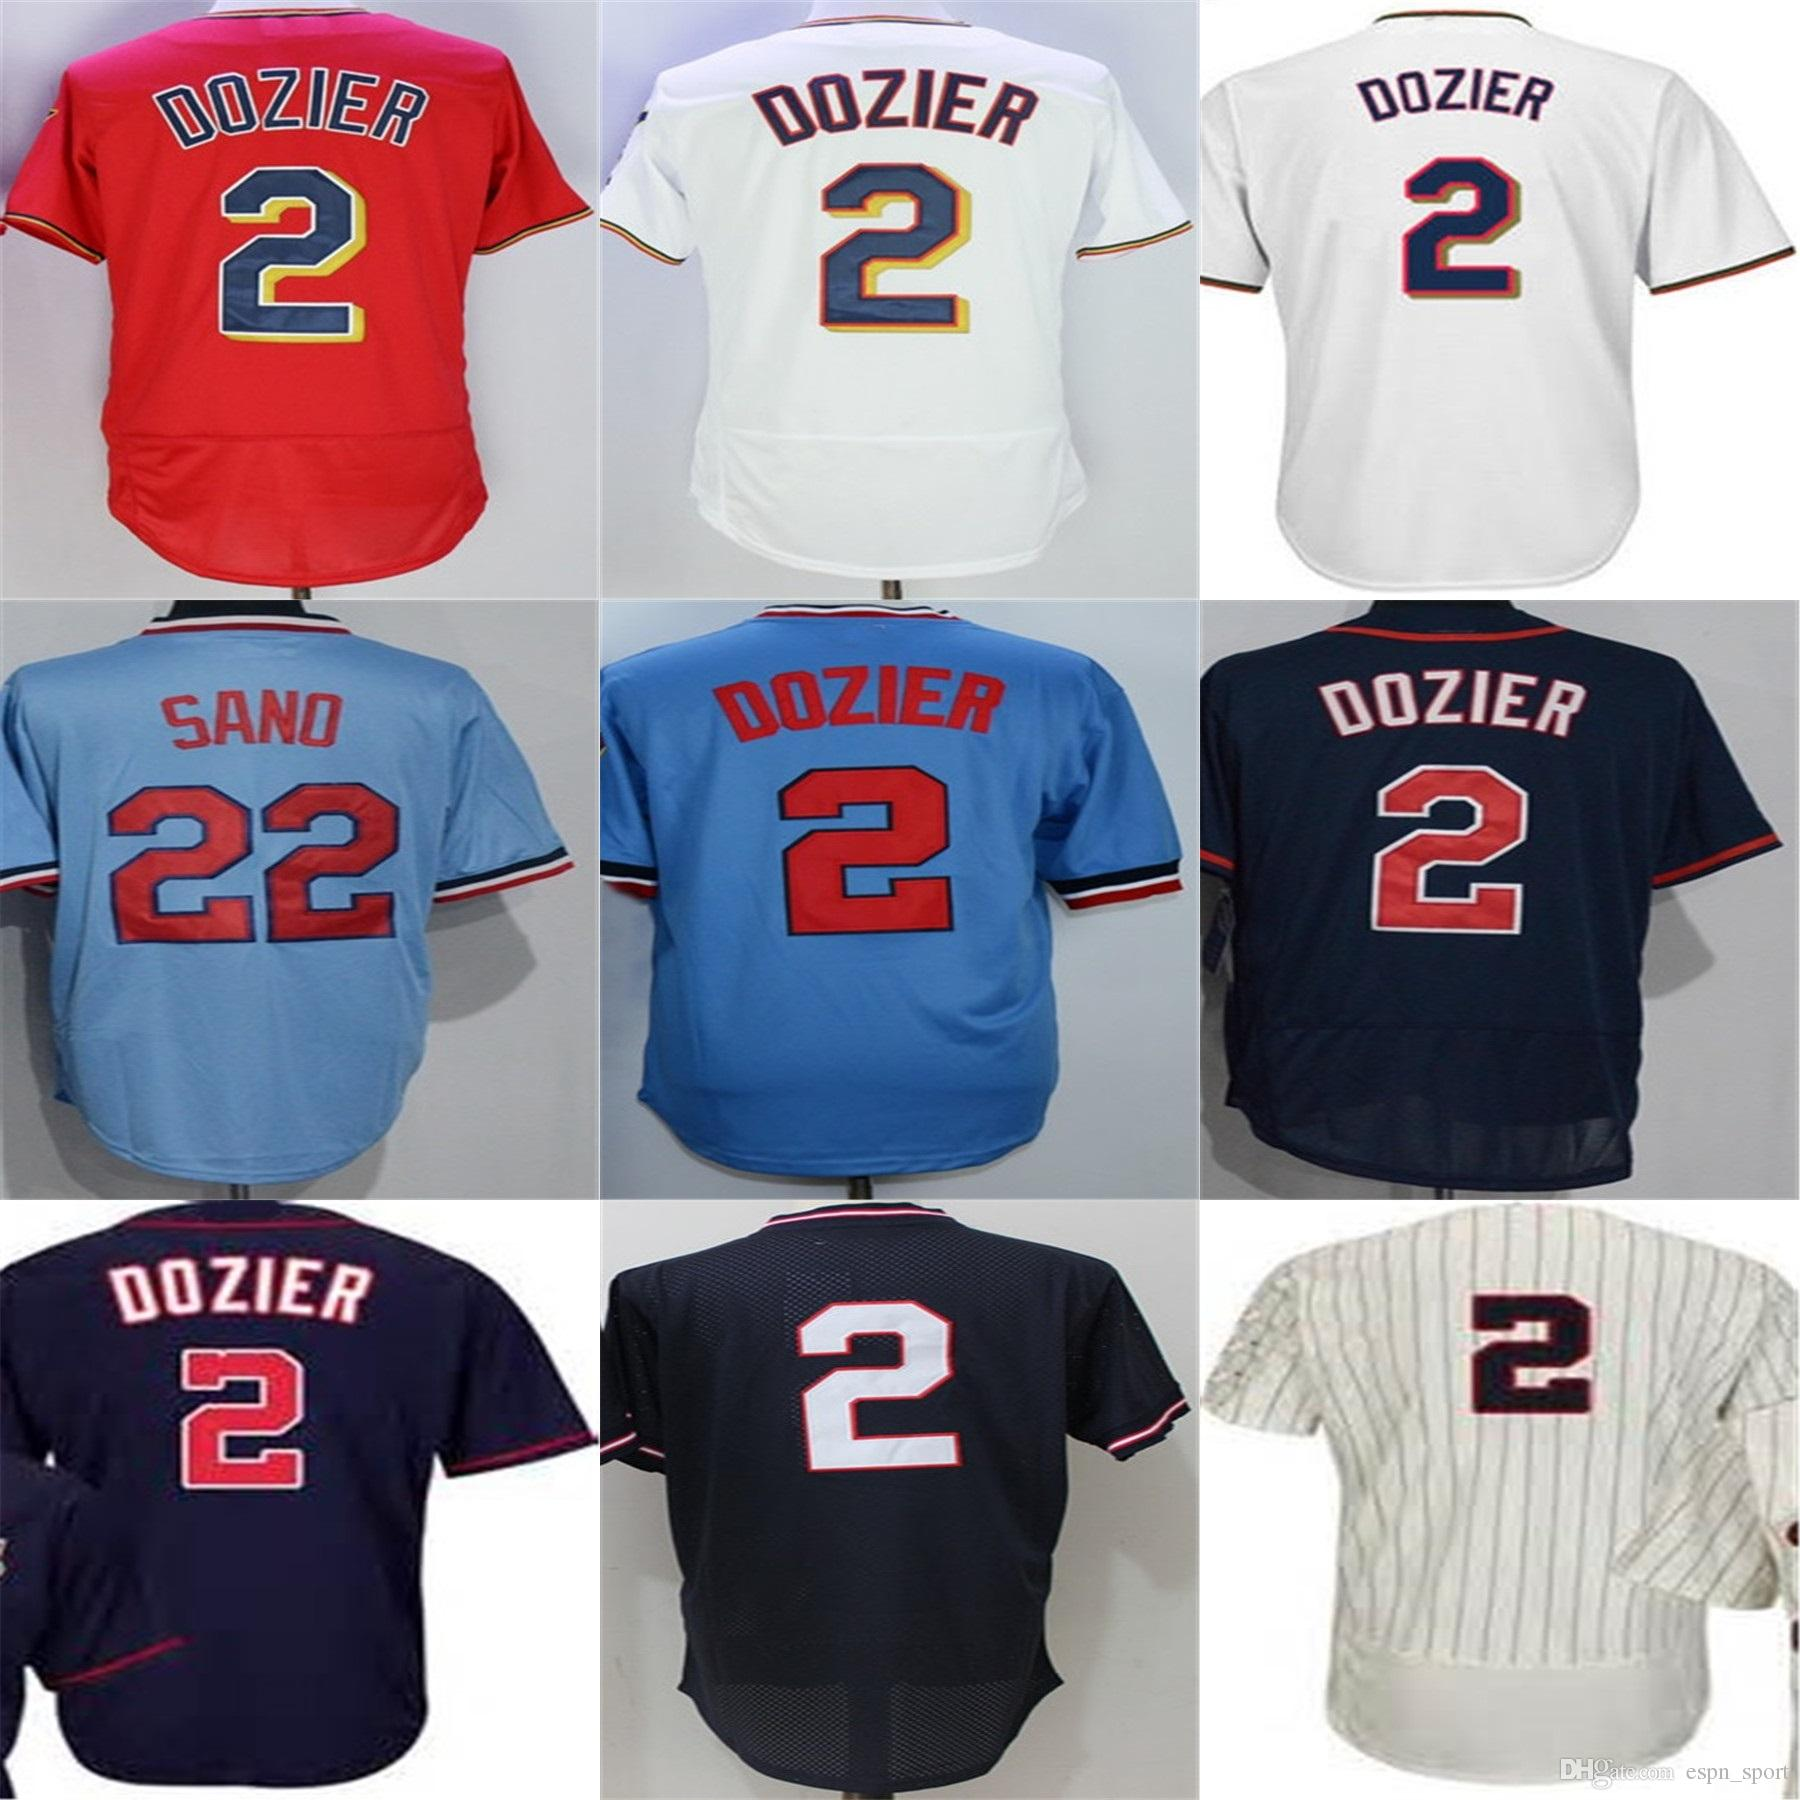 best 2016 new hot sale minnesota 2 brian dozier jersey mens womens kids stitched embroidery logos wh